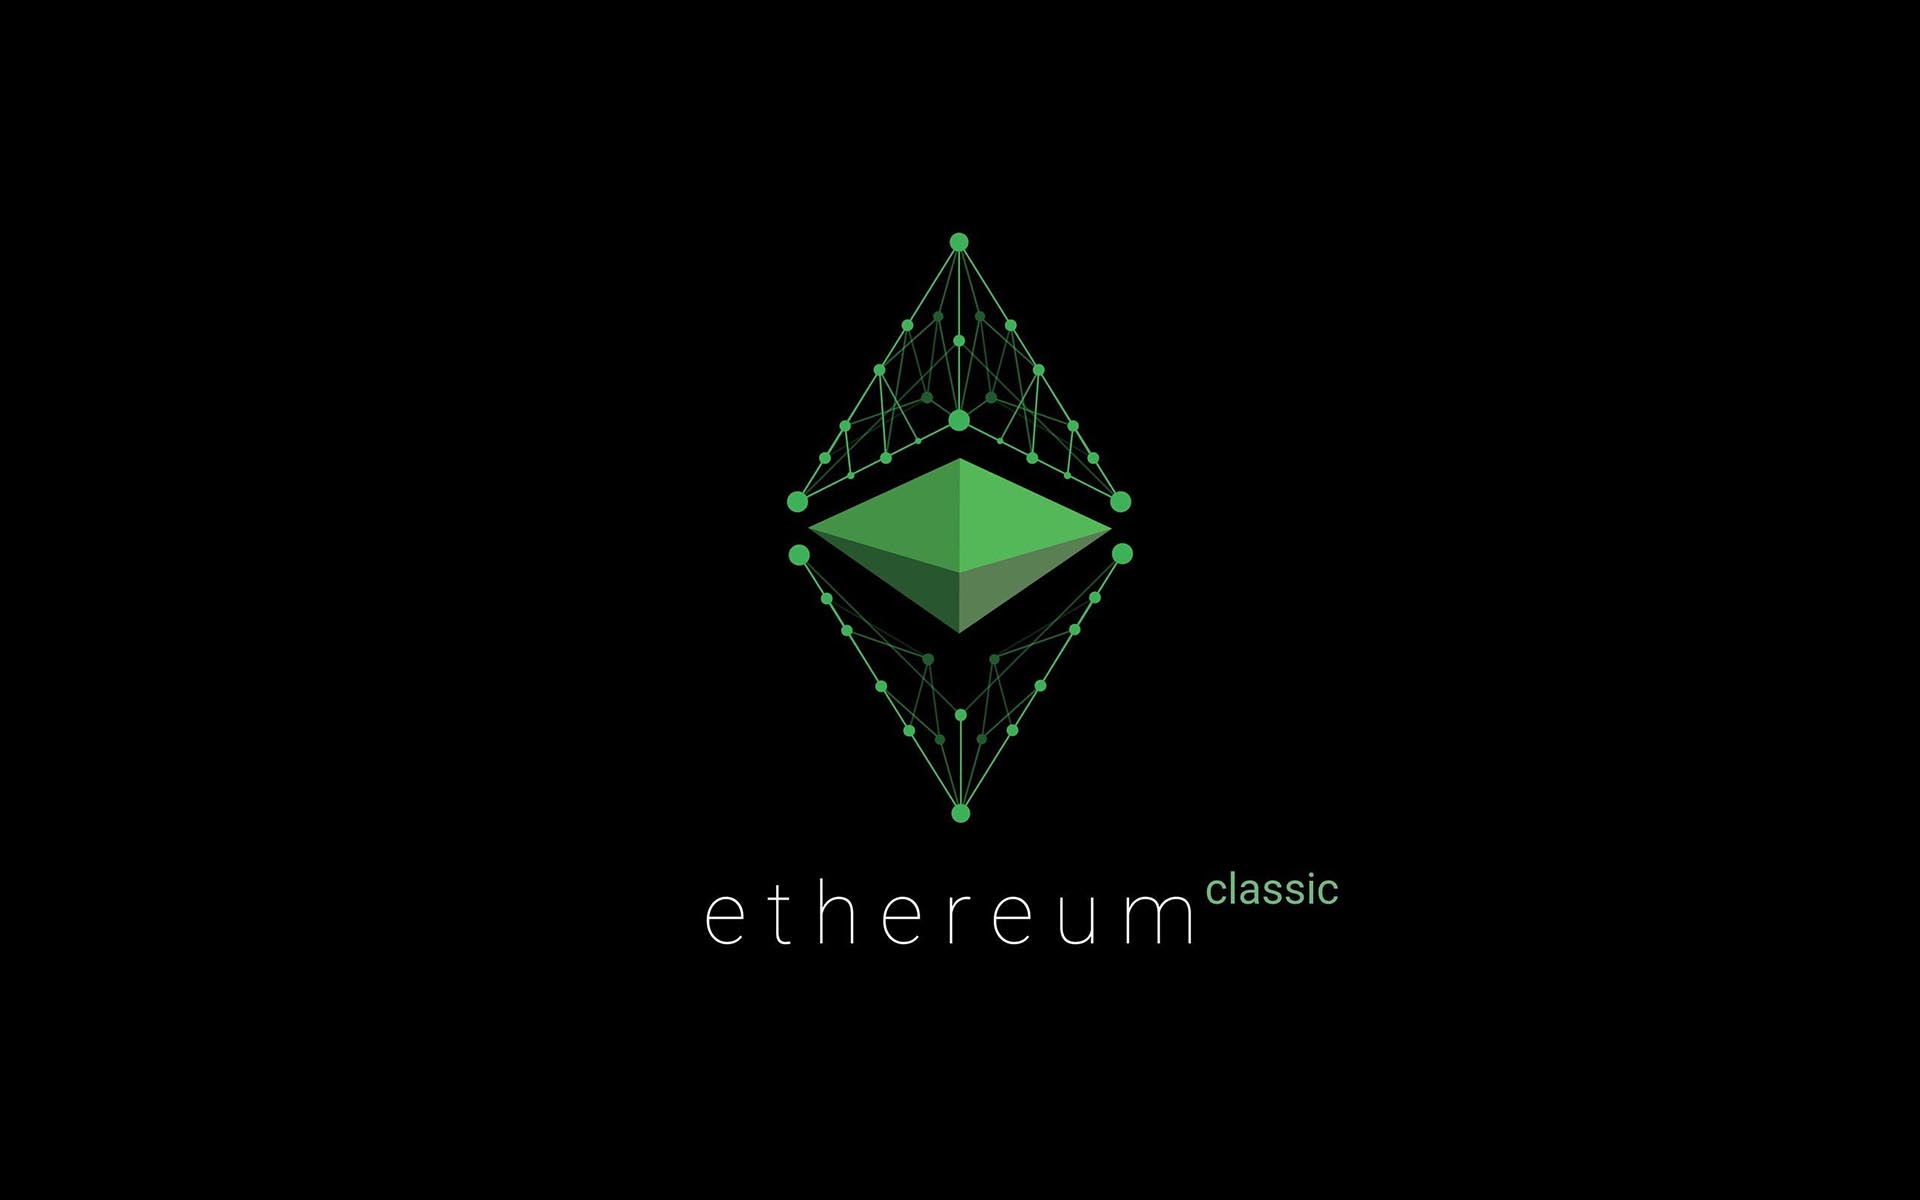 1920x1200 Forex Cryptocurrency Ethereum Wallpapers – Joseph Pickering